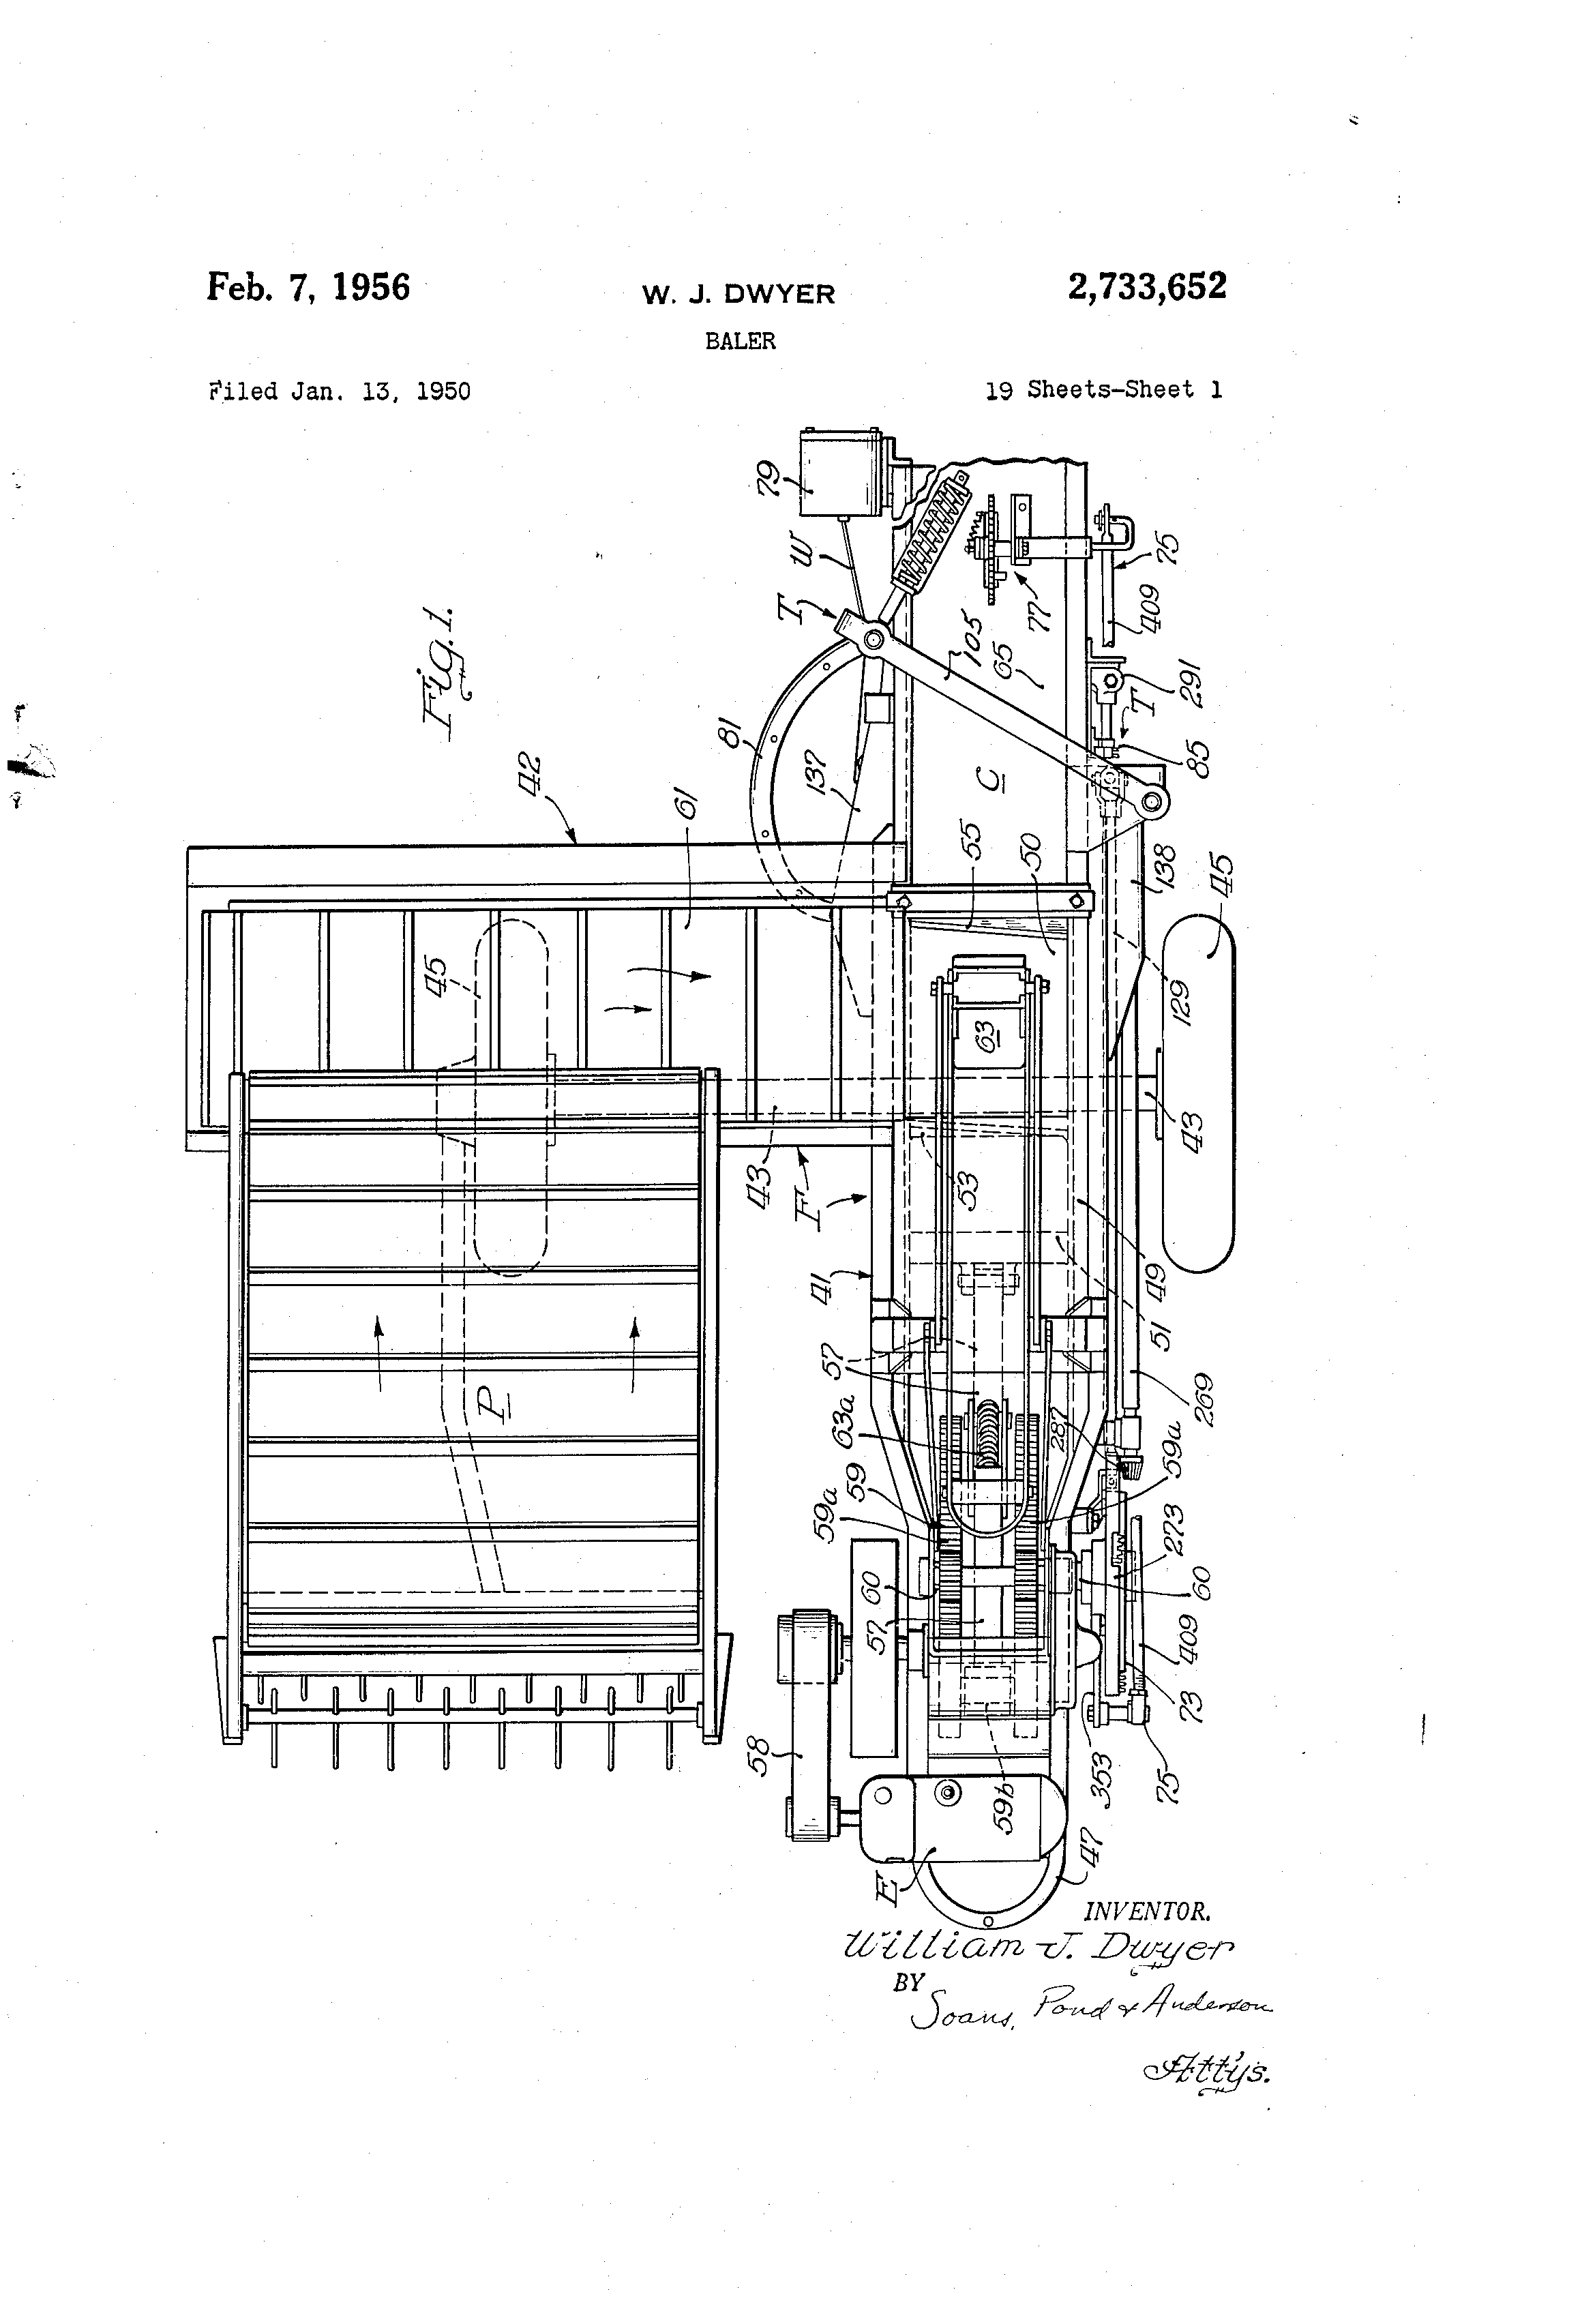 Monitor Wiring Diagram For New Idea 484 Baler